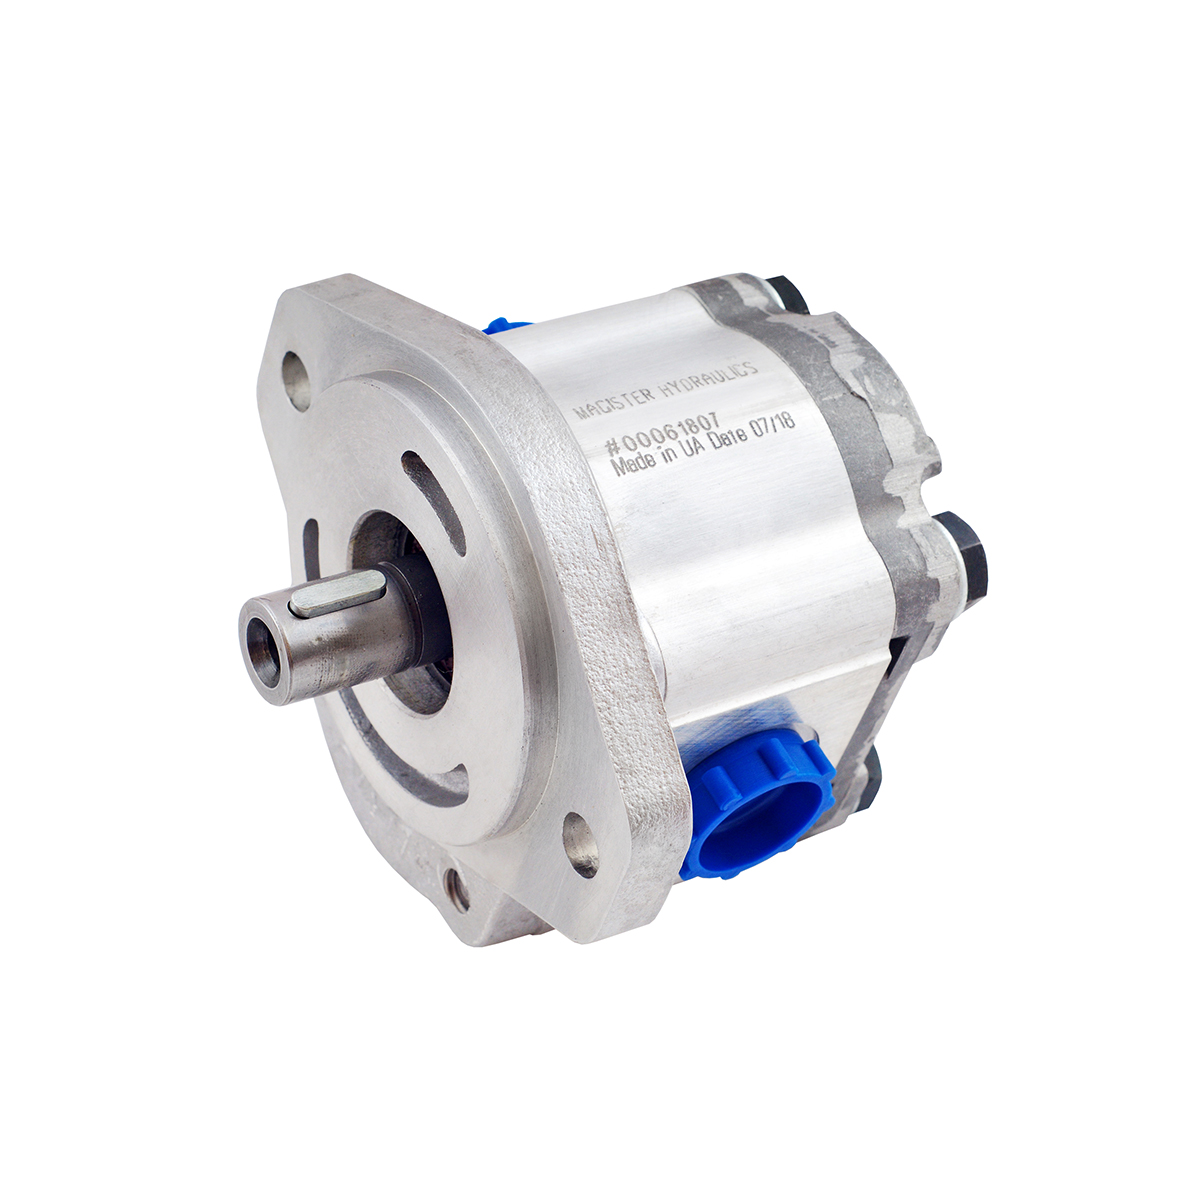 0.38 CID hydraulic gear pump, 3/4 keyed shaft clockwise gear pump | Magister Hydraulics